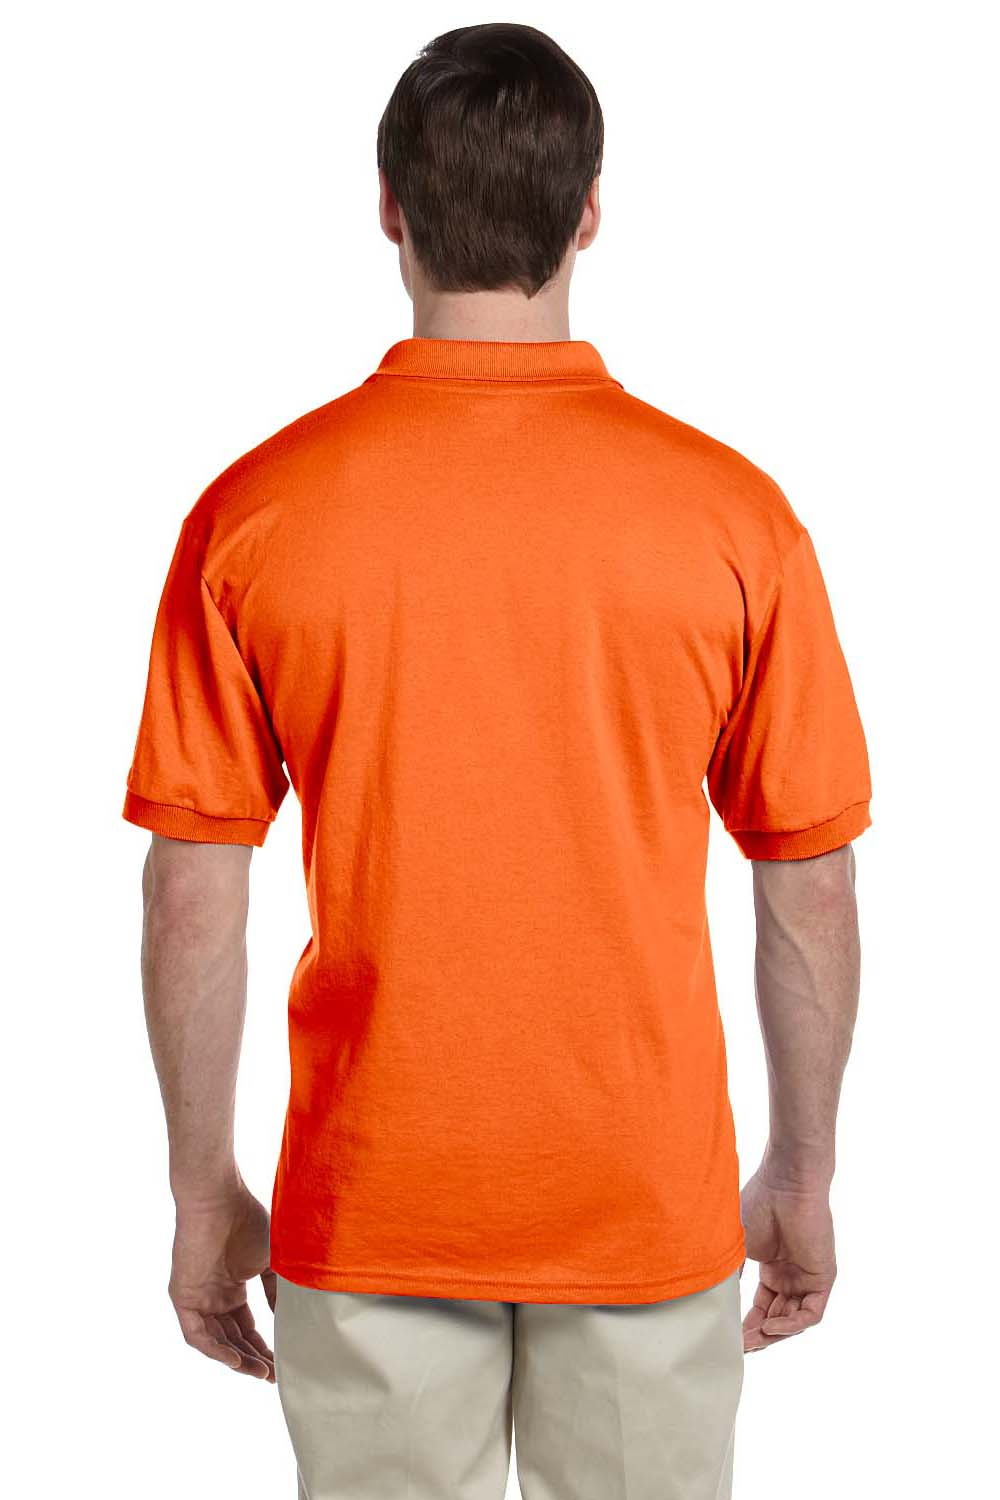 Gildan G880 Mens DryBlend Moisture Wicking Short Sleeve Polo Shirt Orange Back